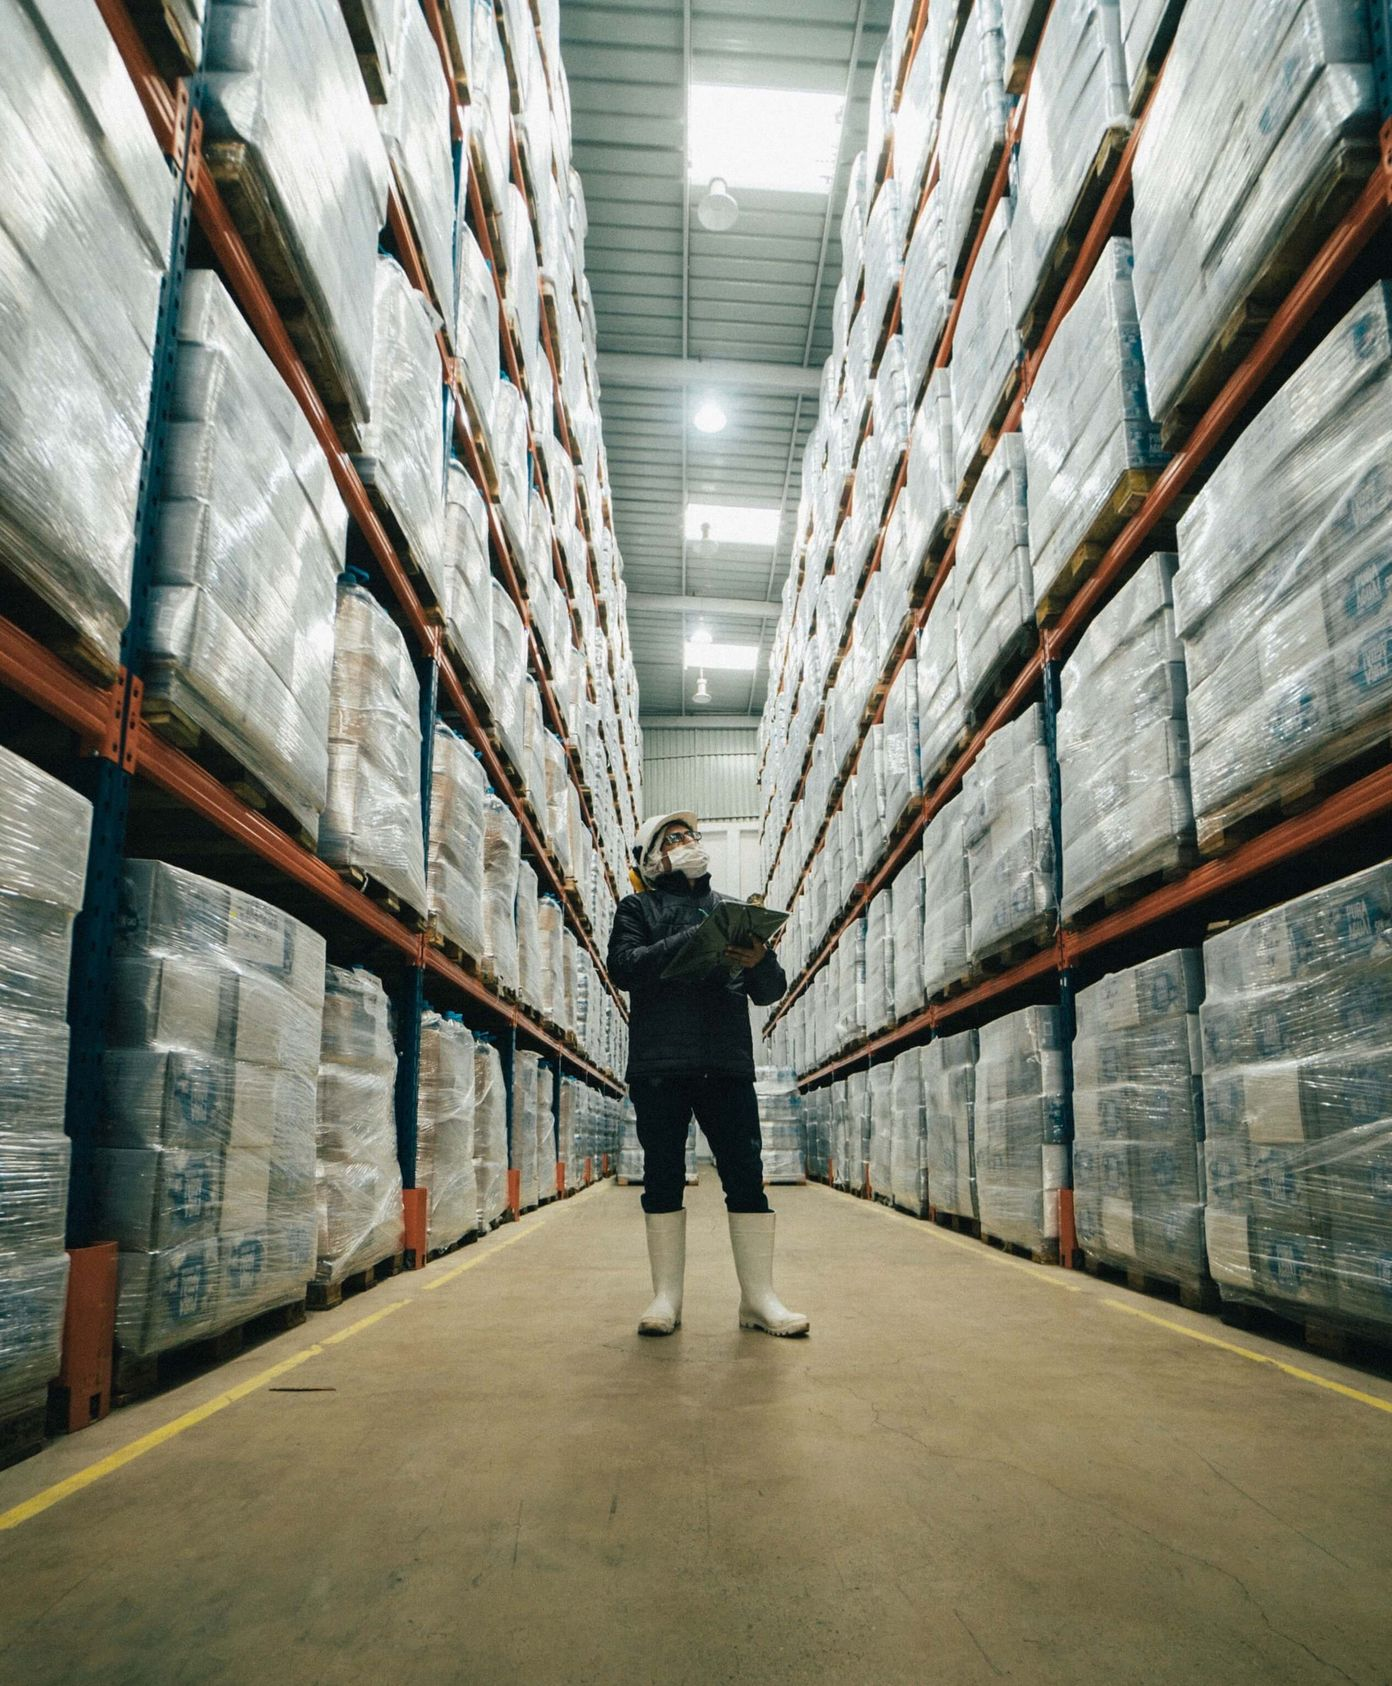 A warehouse employee evaluates safety stock inventory [Unioncrate]